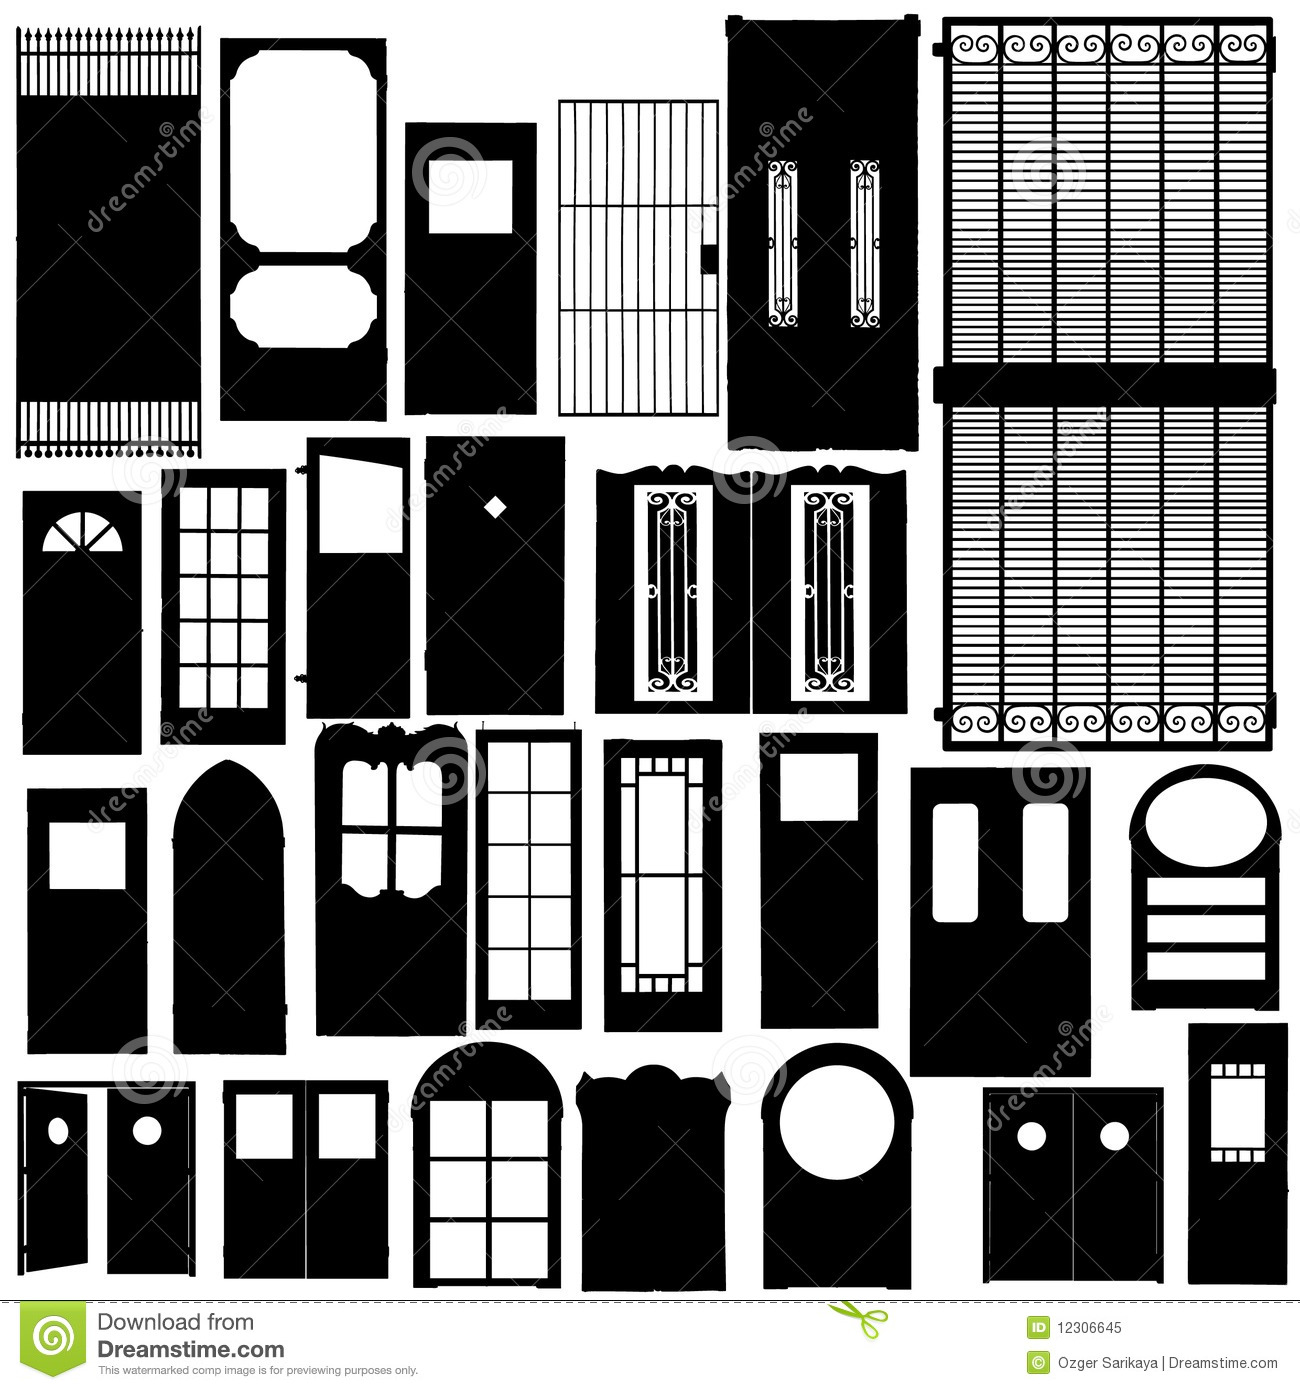 Open closed door clipart - Doors Silhouette Set Royalty Free Stock Photo Image